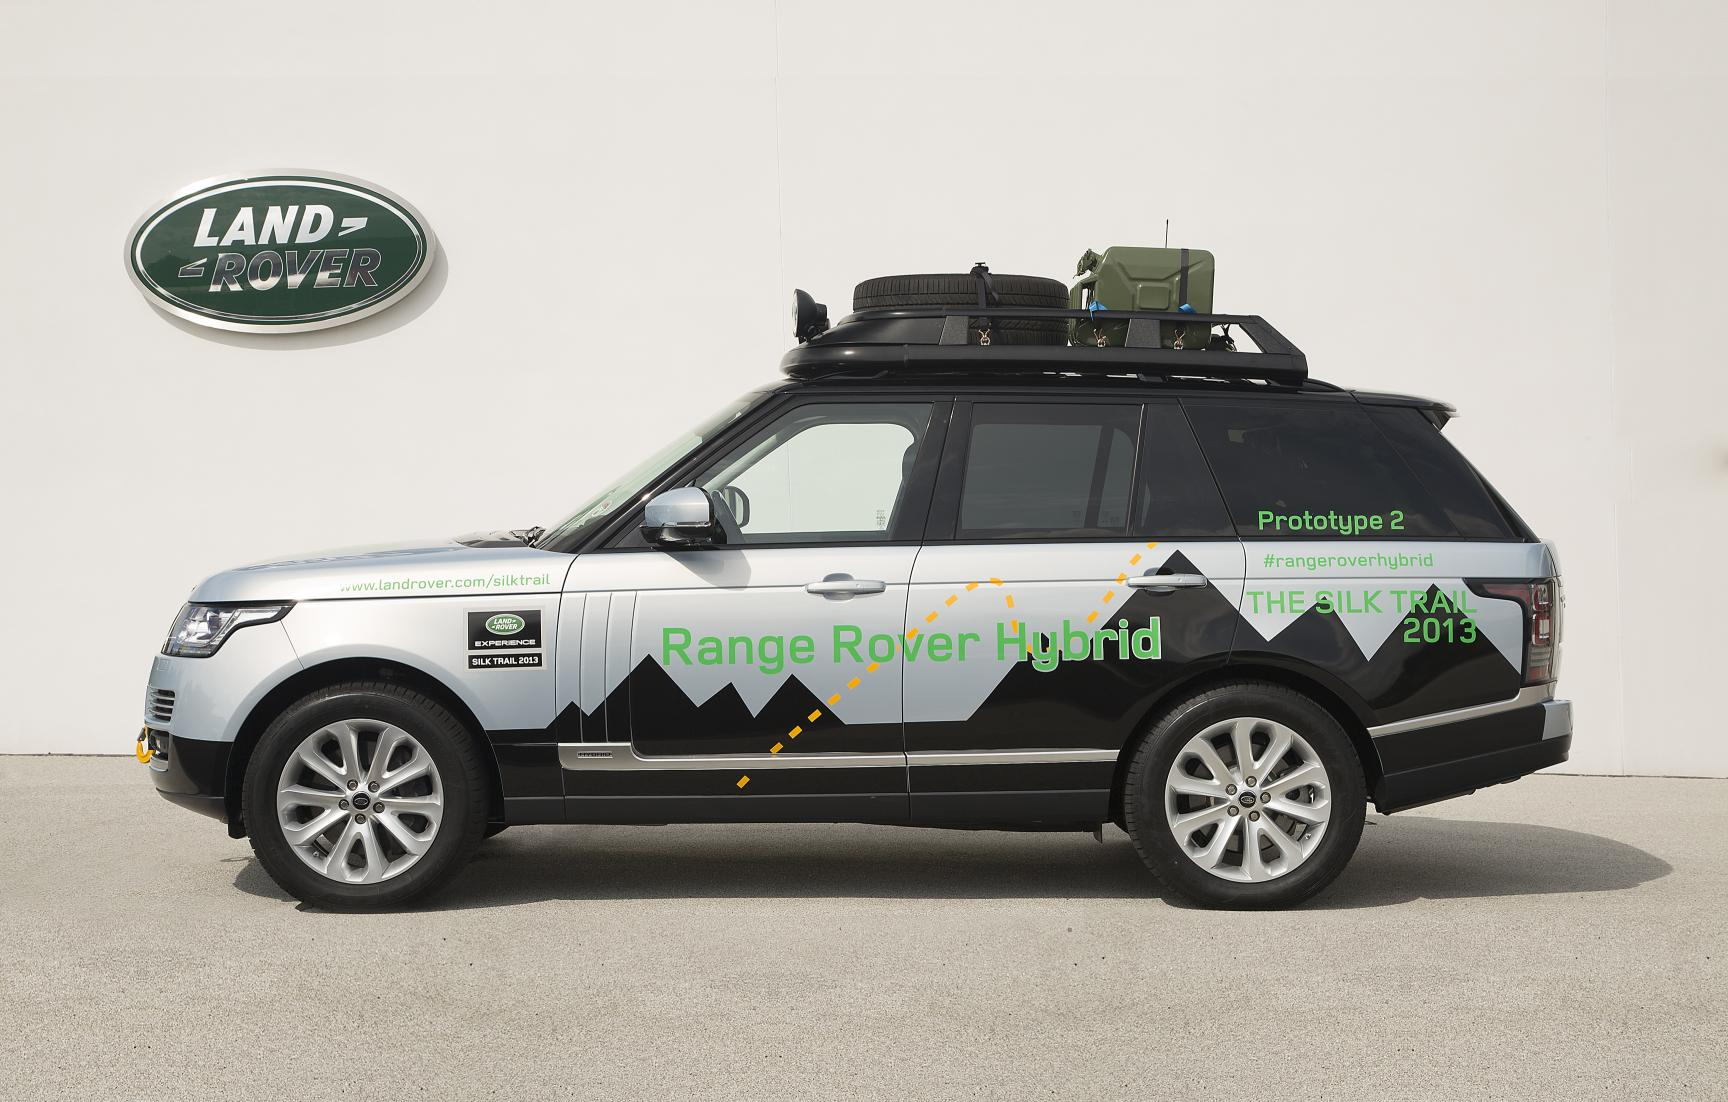 land rover unveils hybrid range rover models autoevolution. Black Bedroom Furniture Sets. Home Design Ideas